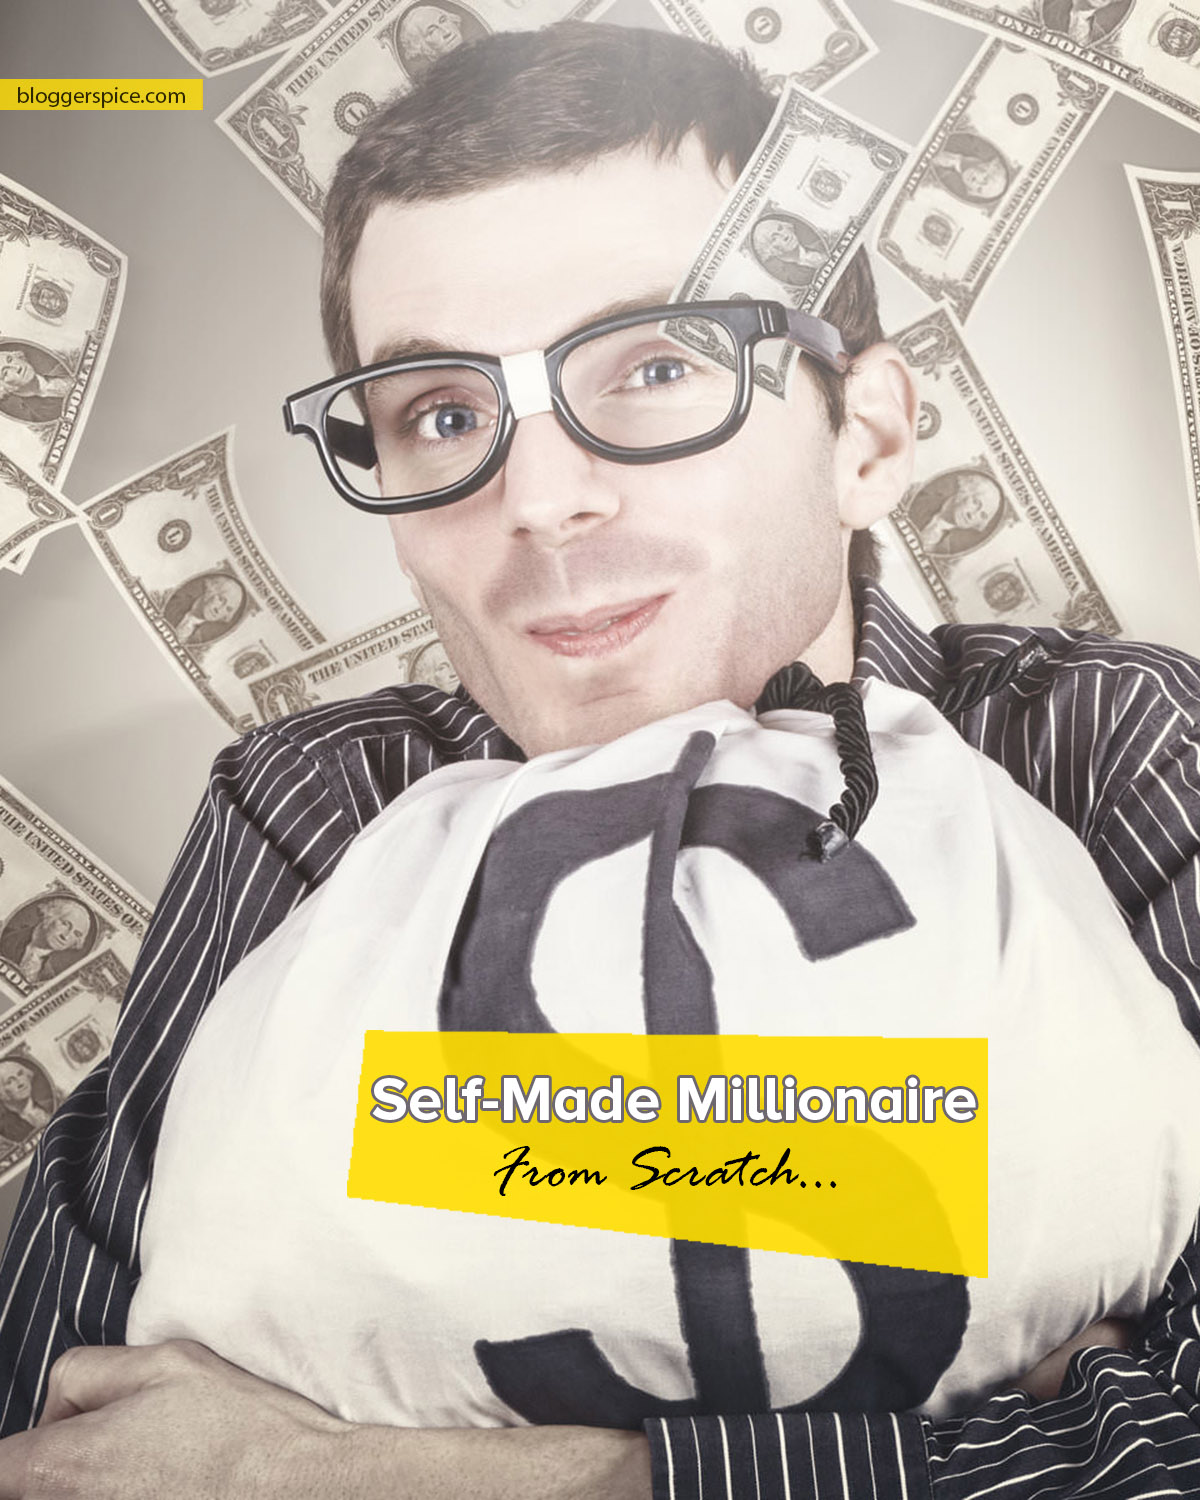 Inculcate A Few Good Habits To Become A Self-Made Millionaire From Scratch